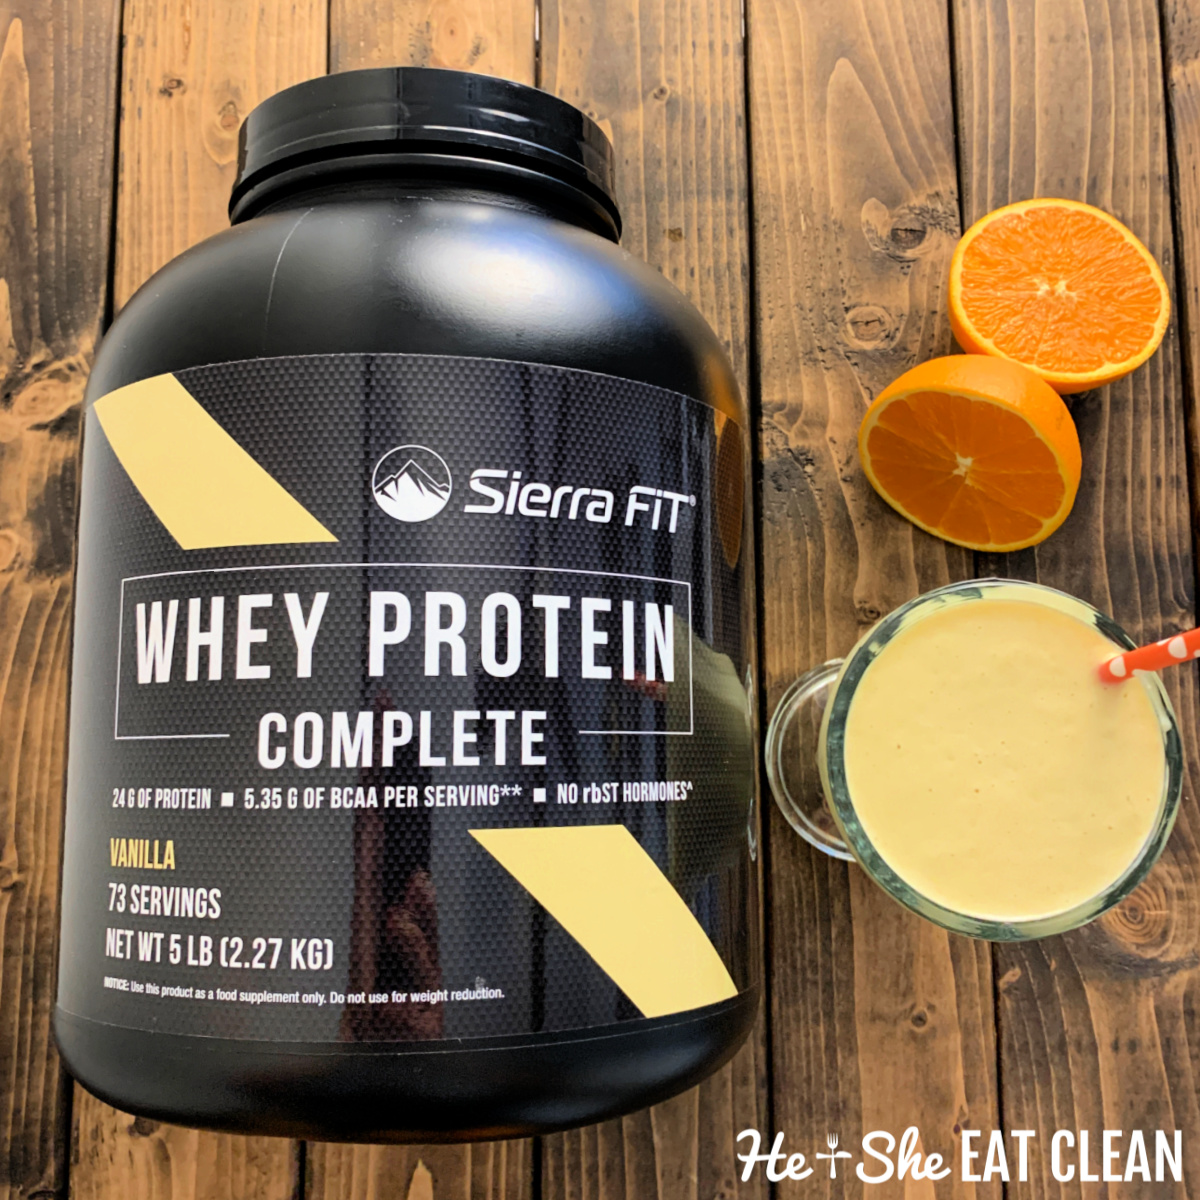 large container of protein powder next to a protein shake and a sliced orange